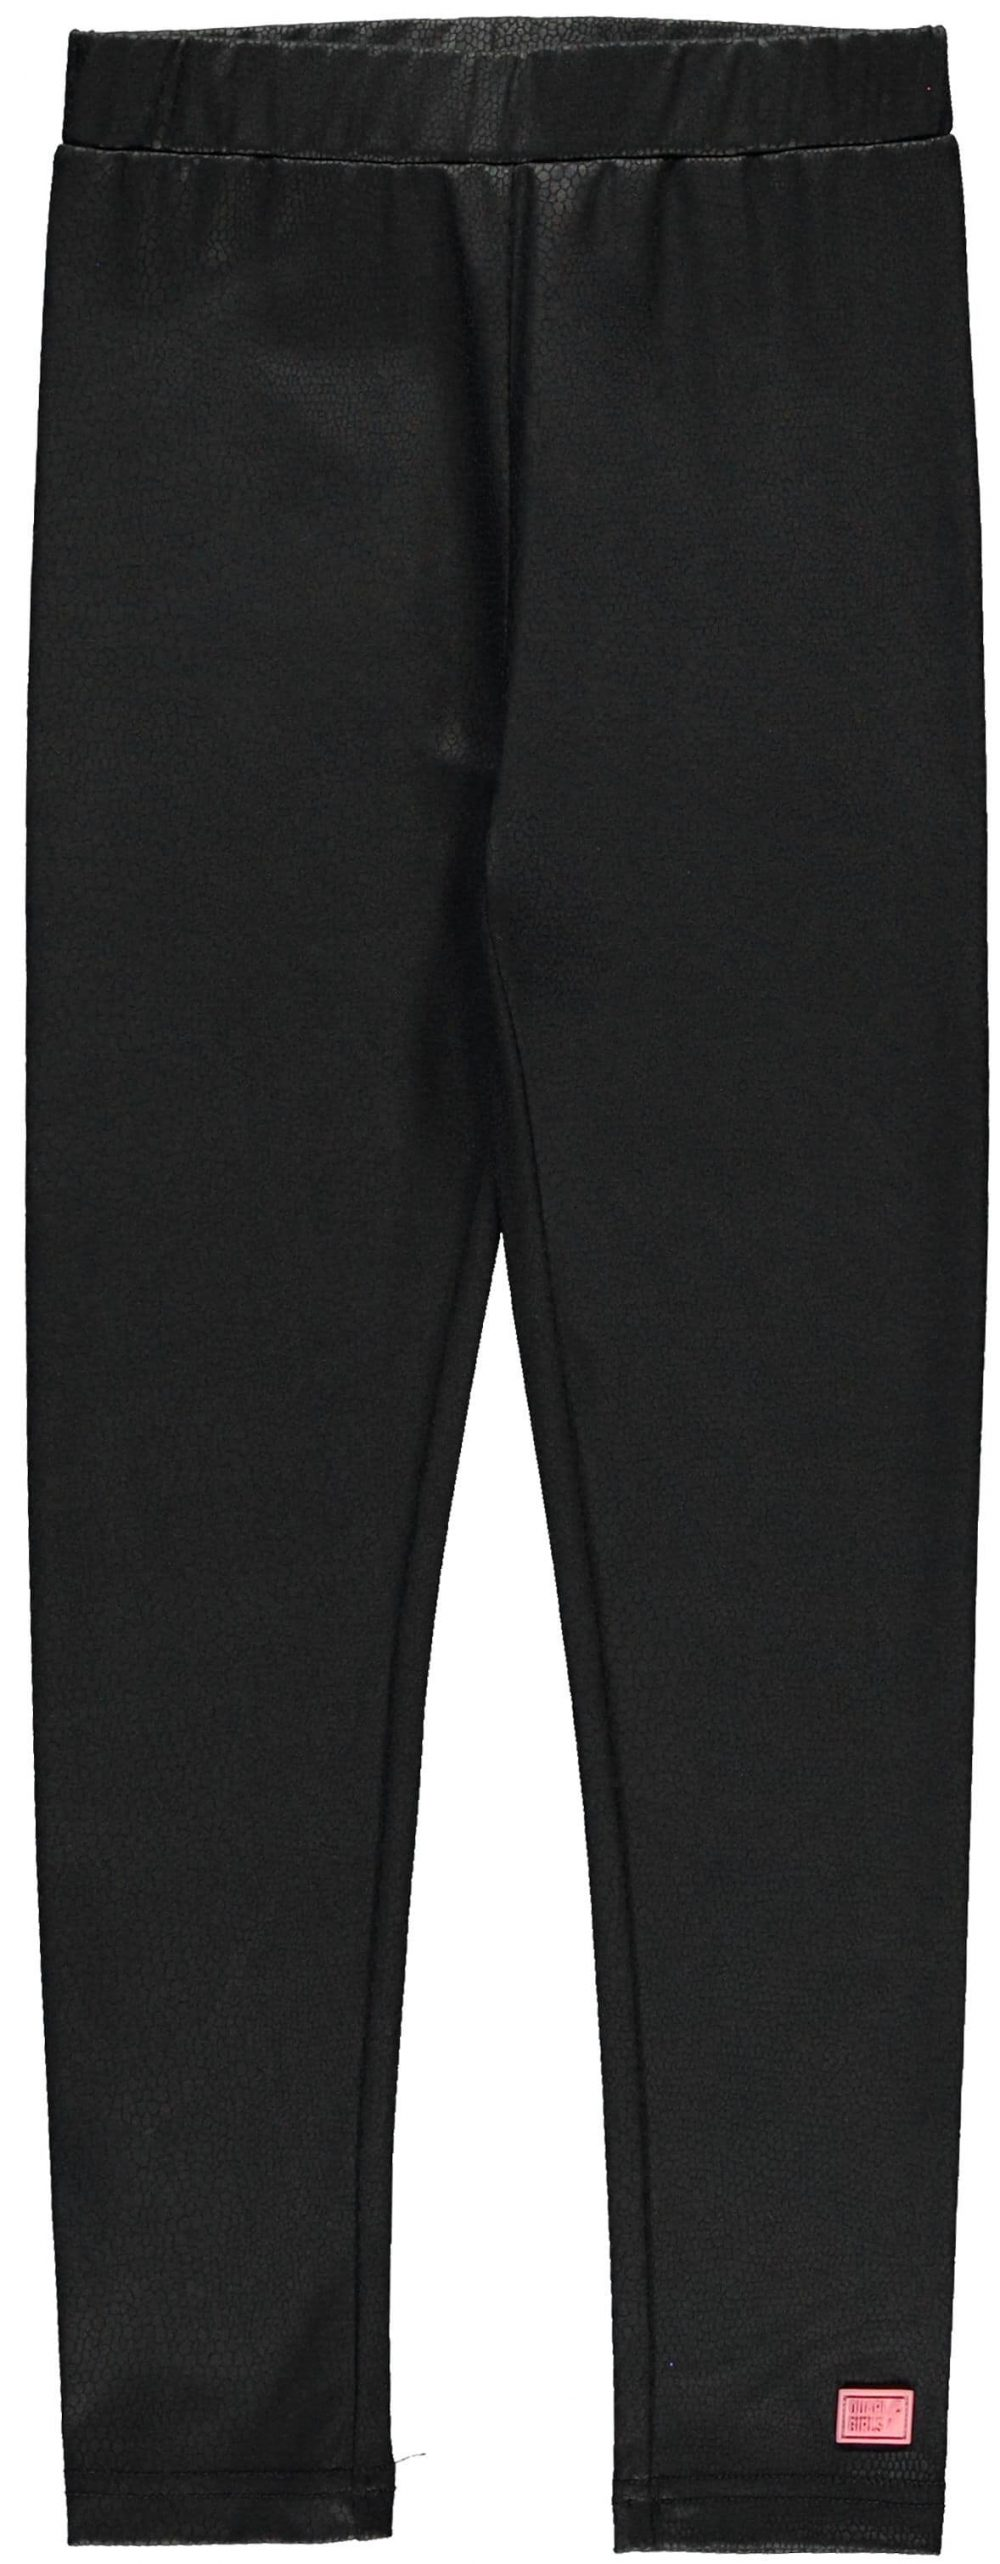 quapi-legging terra dark grey